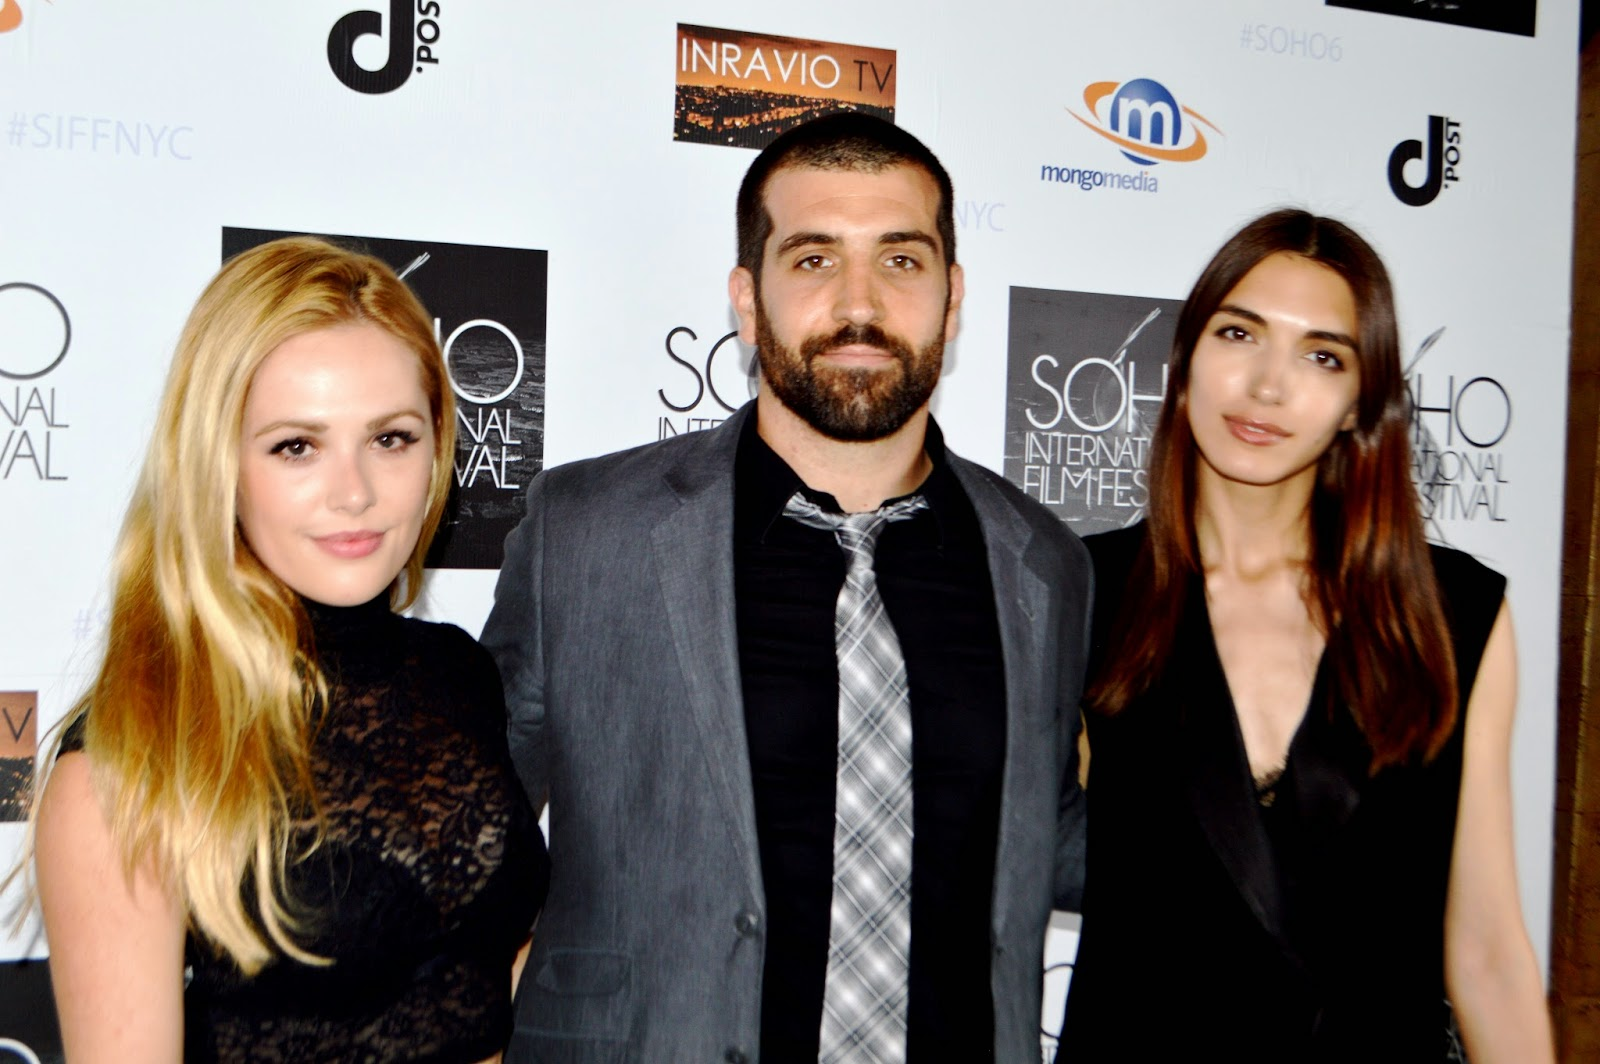 lucky number movie screening at the soho film festival a daze in natalie hall michael d lynch and carme boixadera